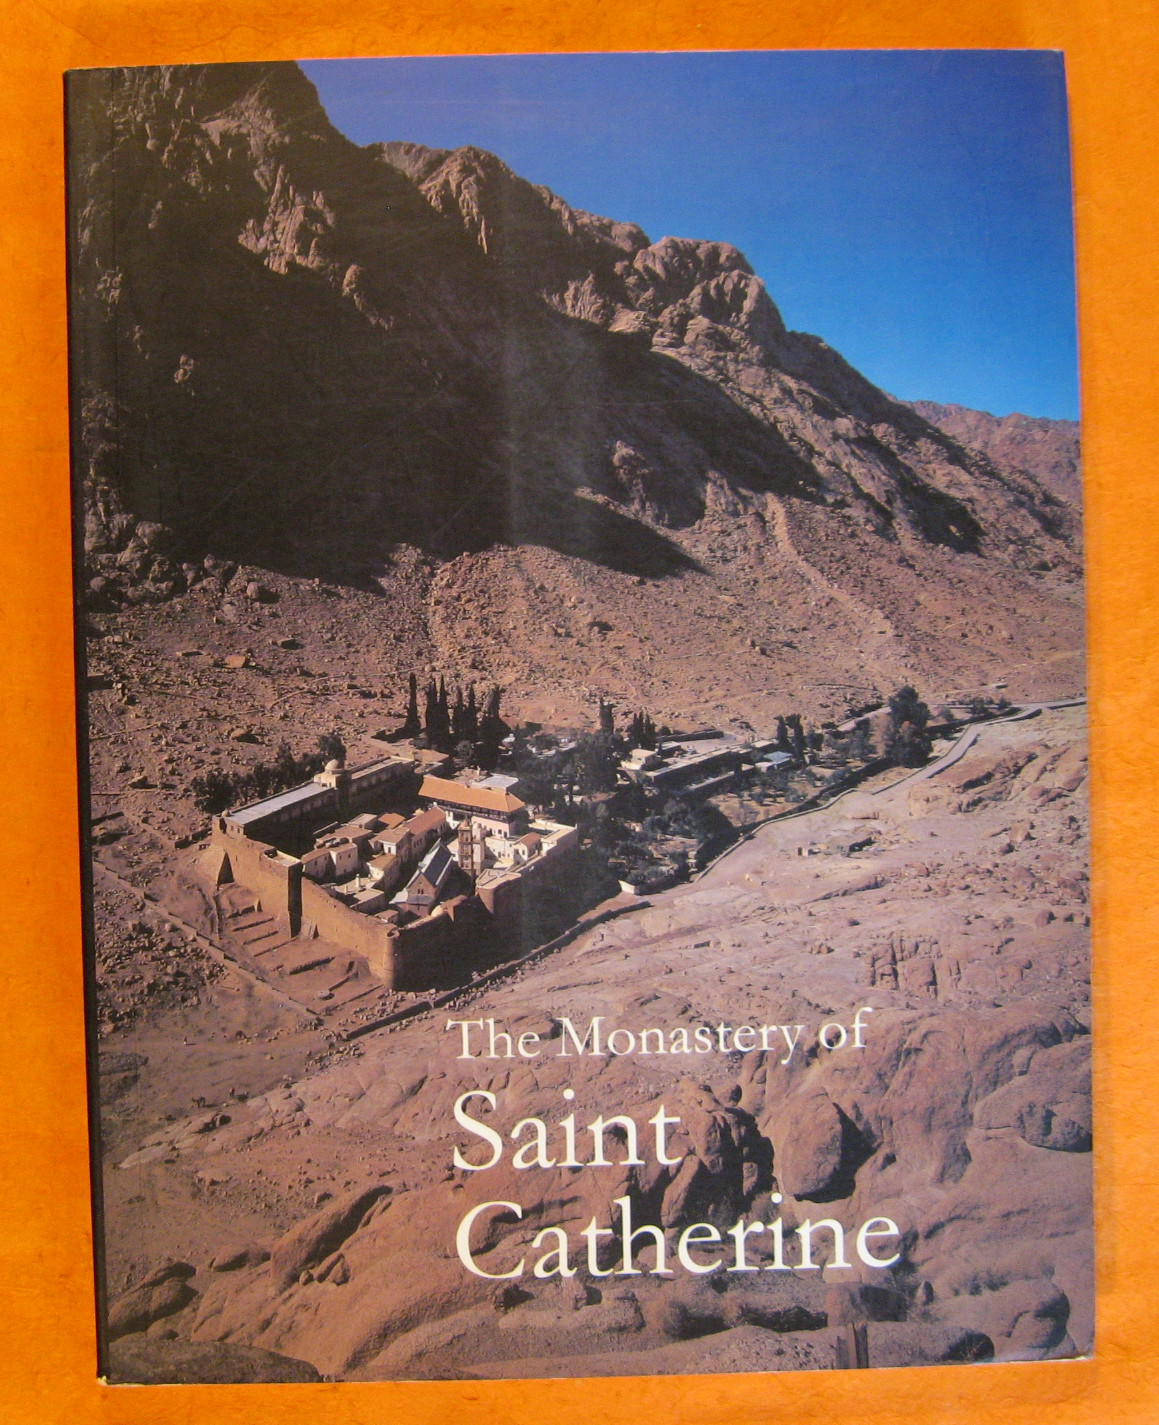 The Monastery of Saint Catherine, Baddeley, Oriana & Brunner, Earleen (ed.)